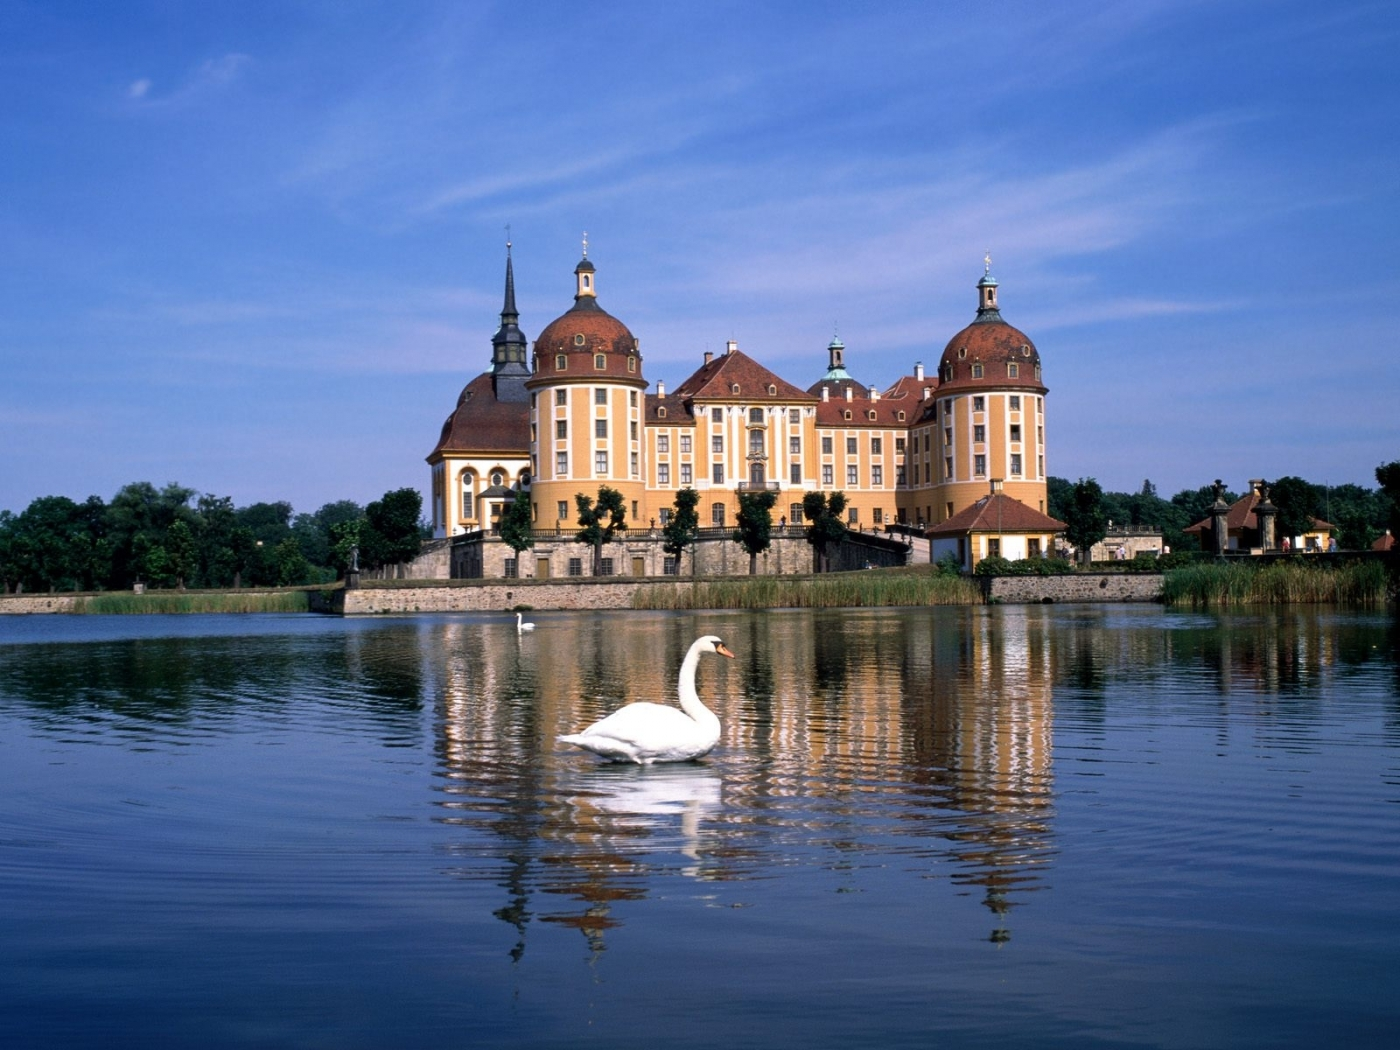 40253 download wallpaper Landscape, Castles, Swans screensavers and pictures for free